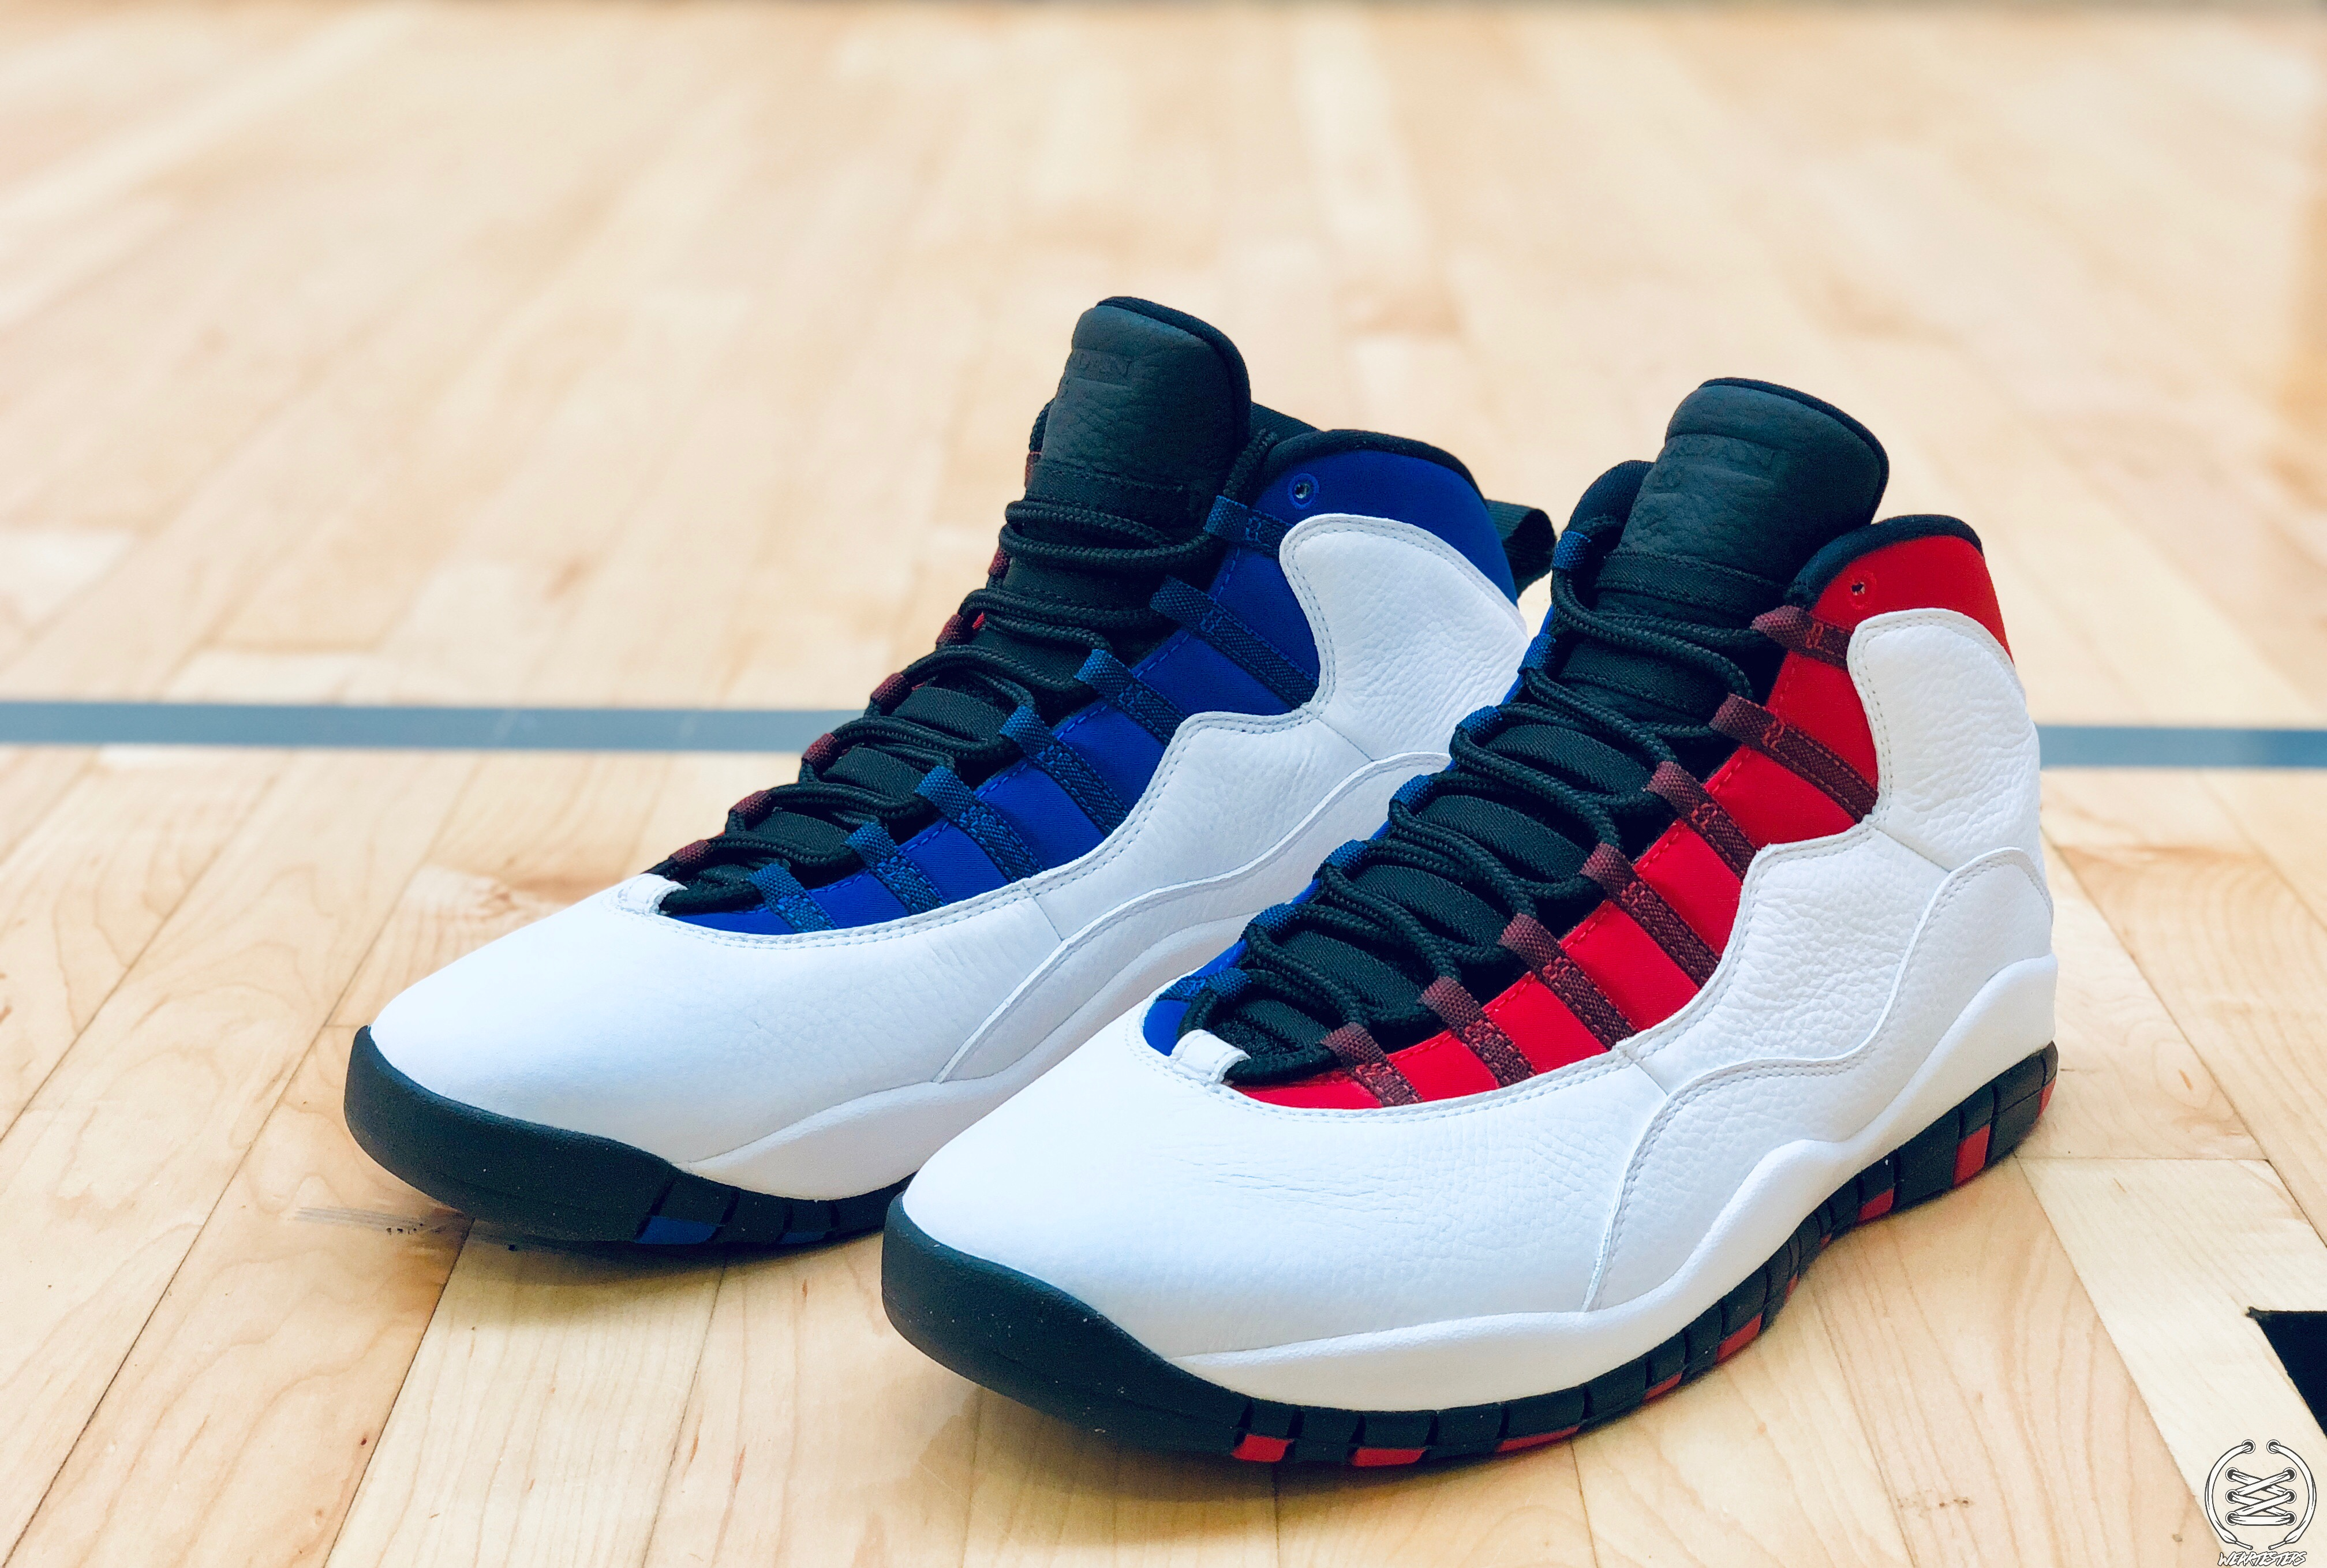 Air Jordan 10 class of 2006 2